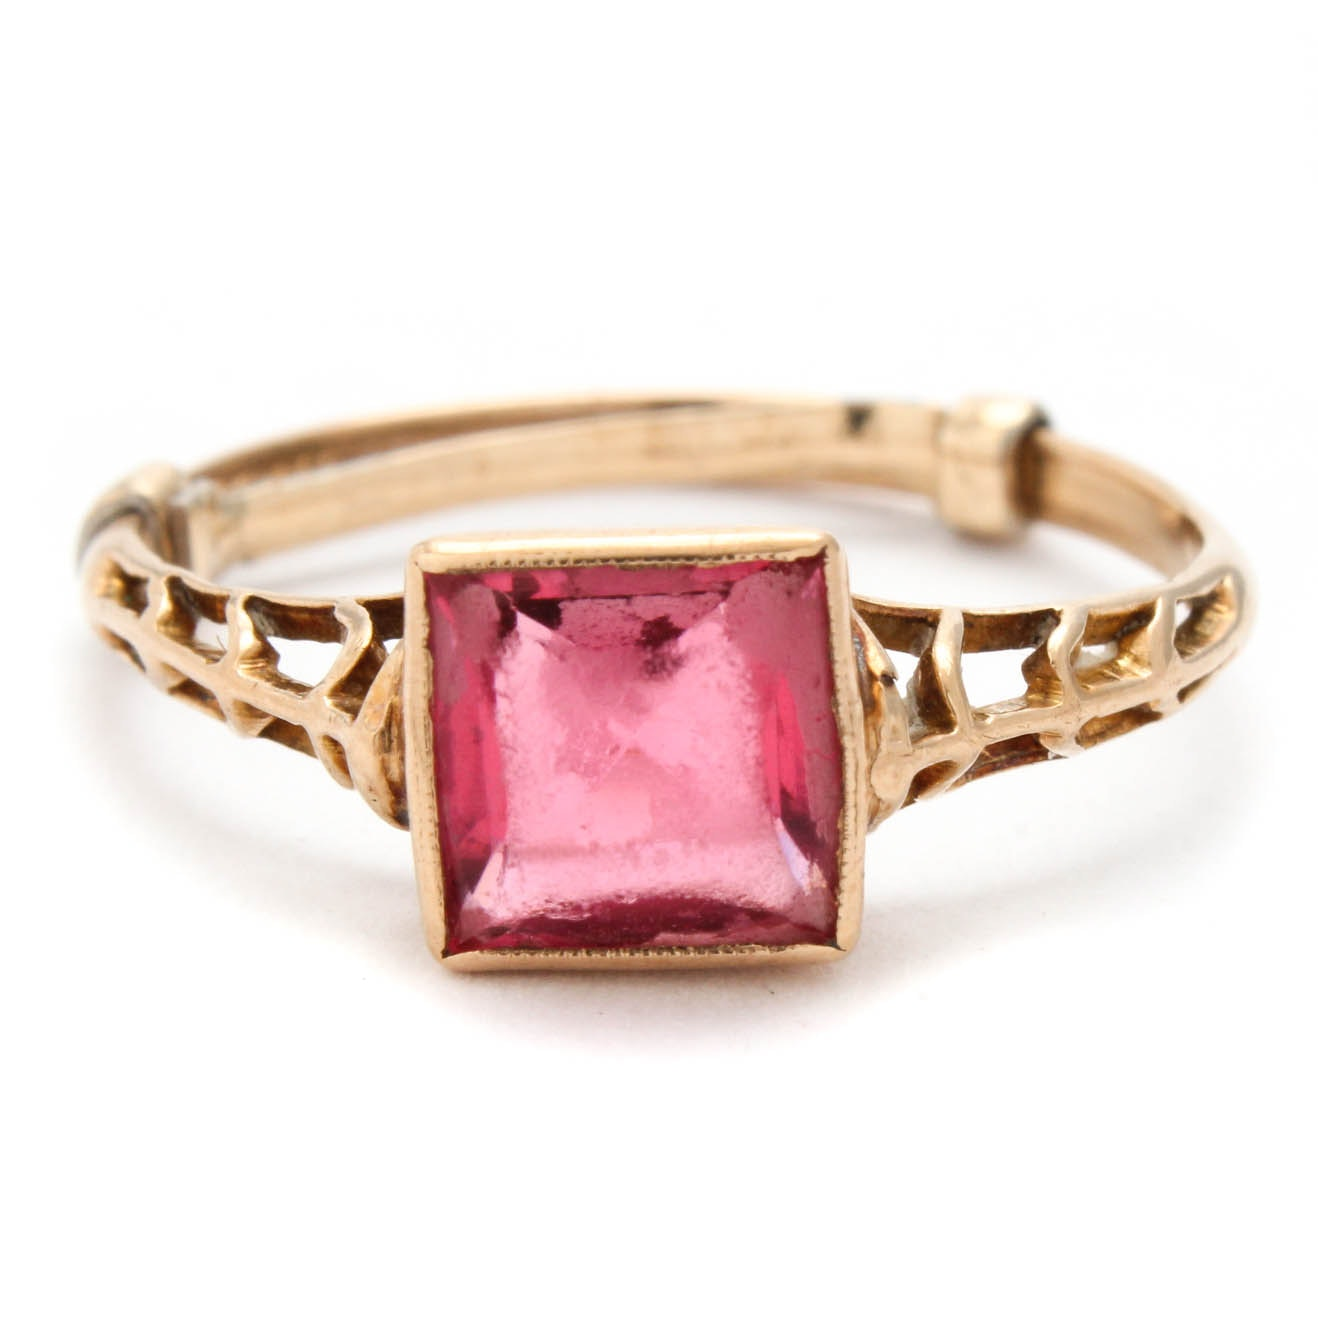 10K Yellow Gold and Synthetic Spinel Ring